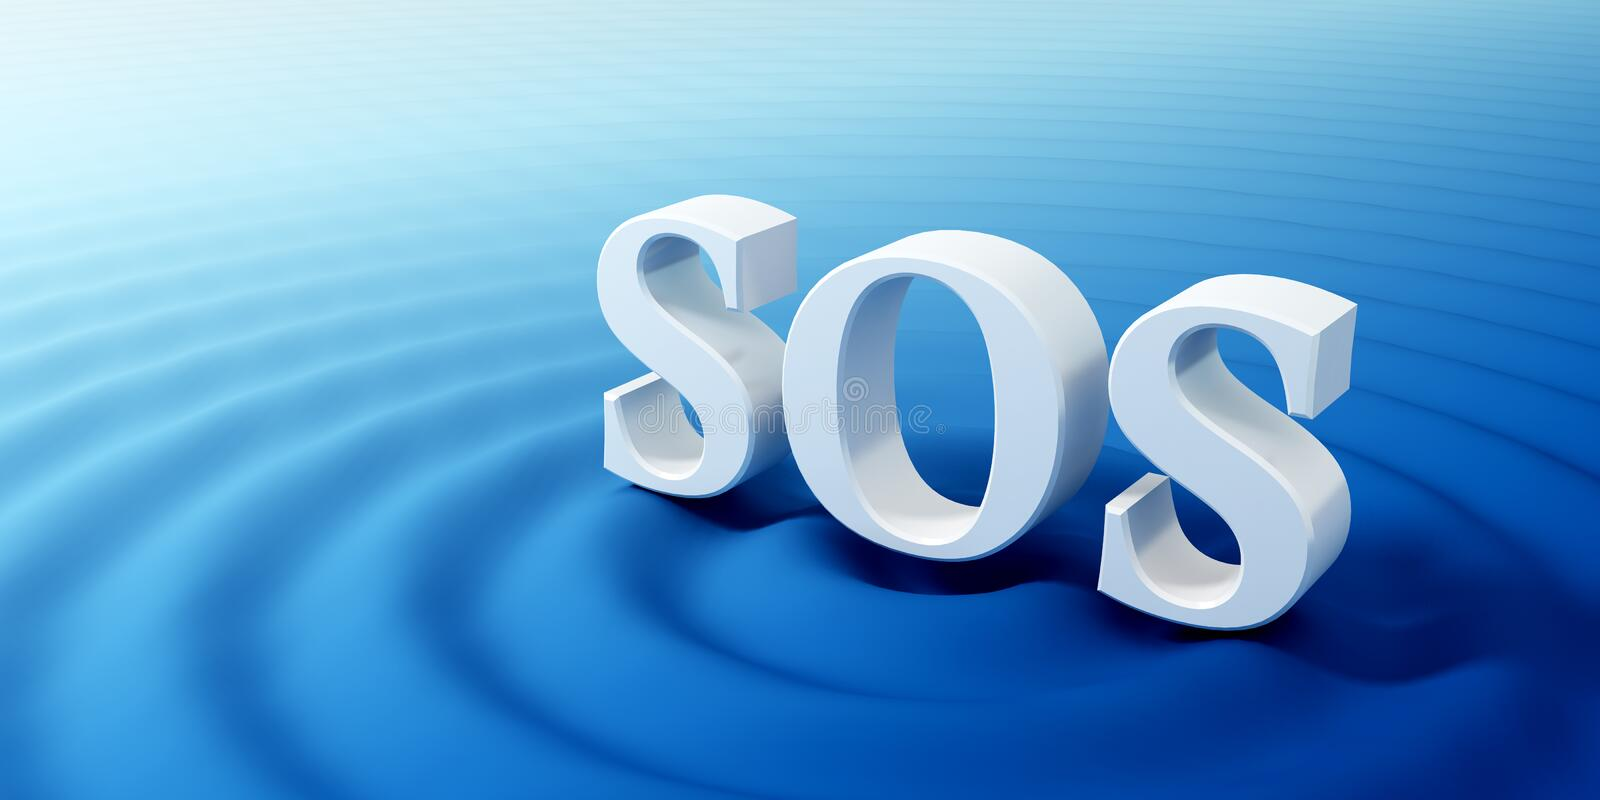 SOS symbol. Concept of the SOS symbol sinking in the ocean royalty free illustration